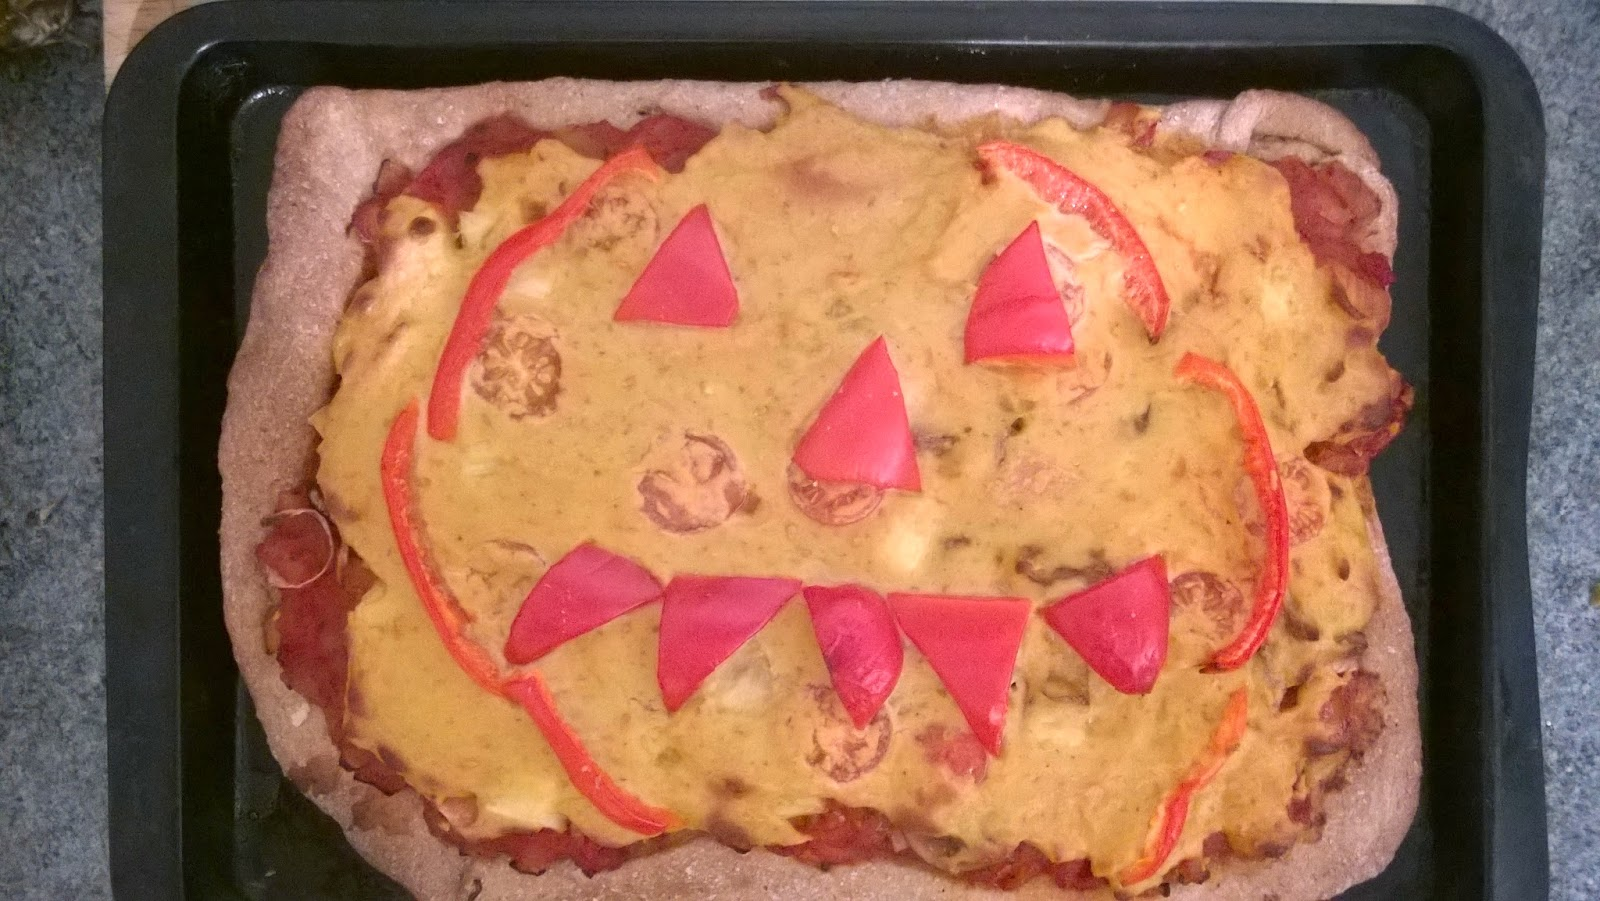 Flicking the vs happy hallowe 39 en pizza for Granny pottymouth bakes a vegan cake